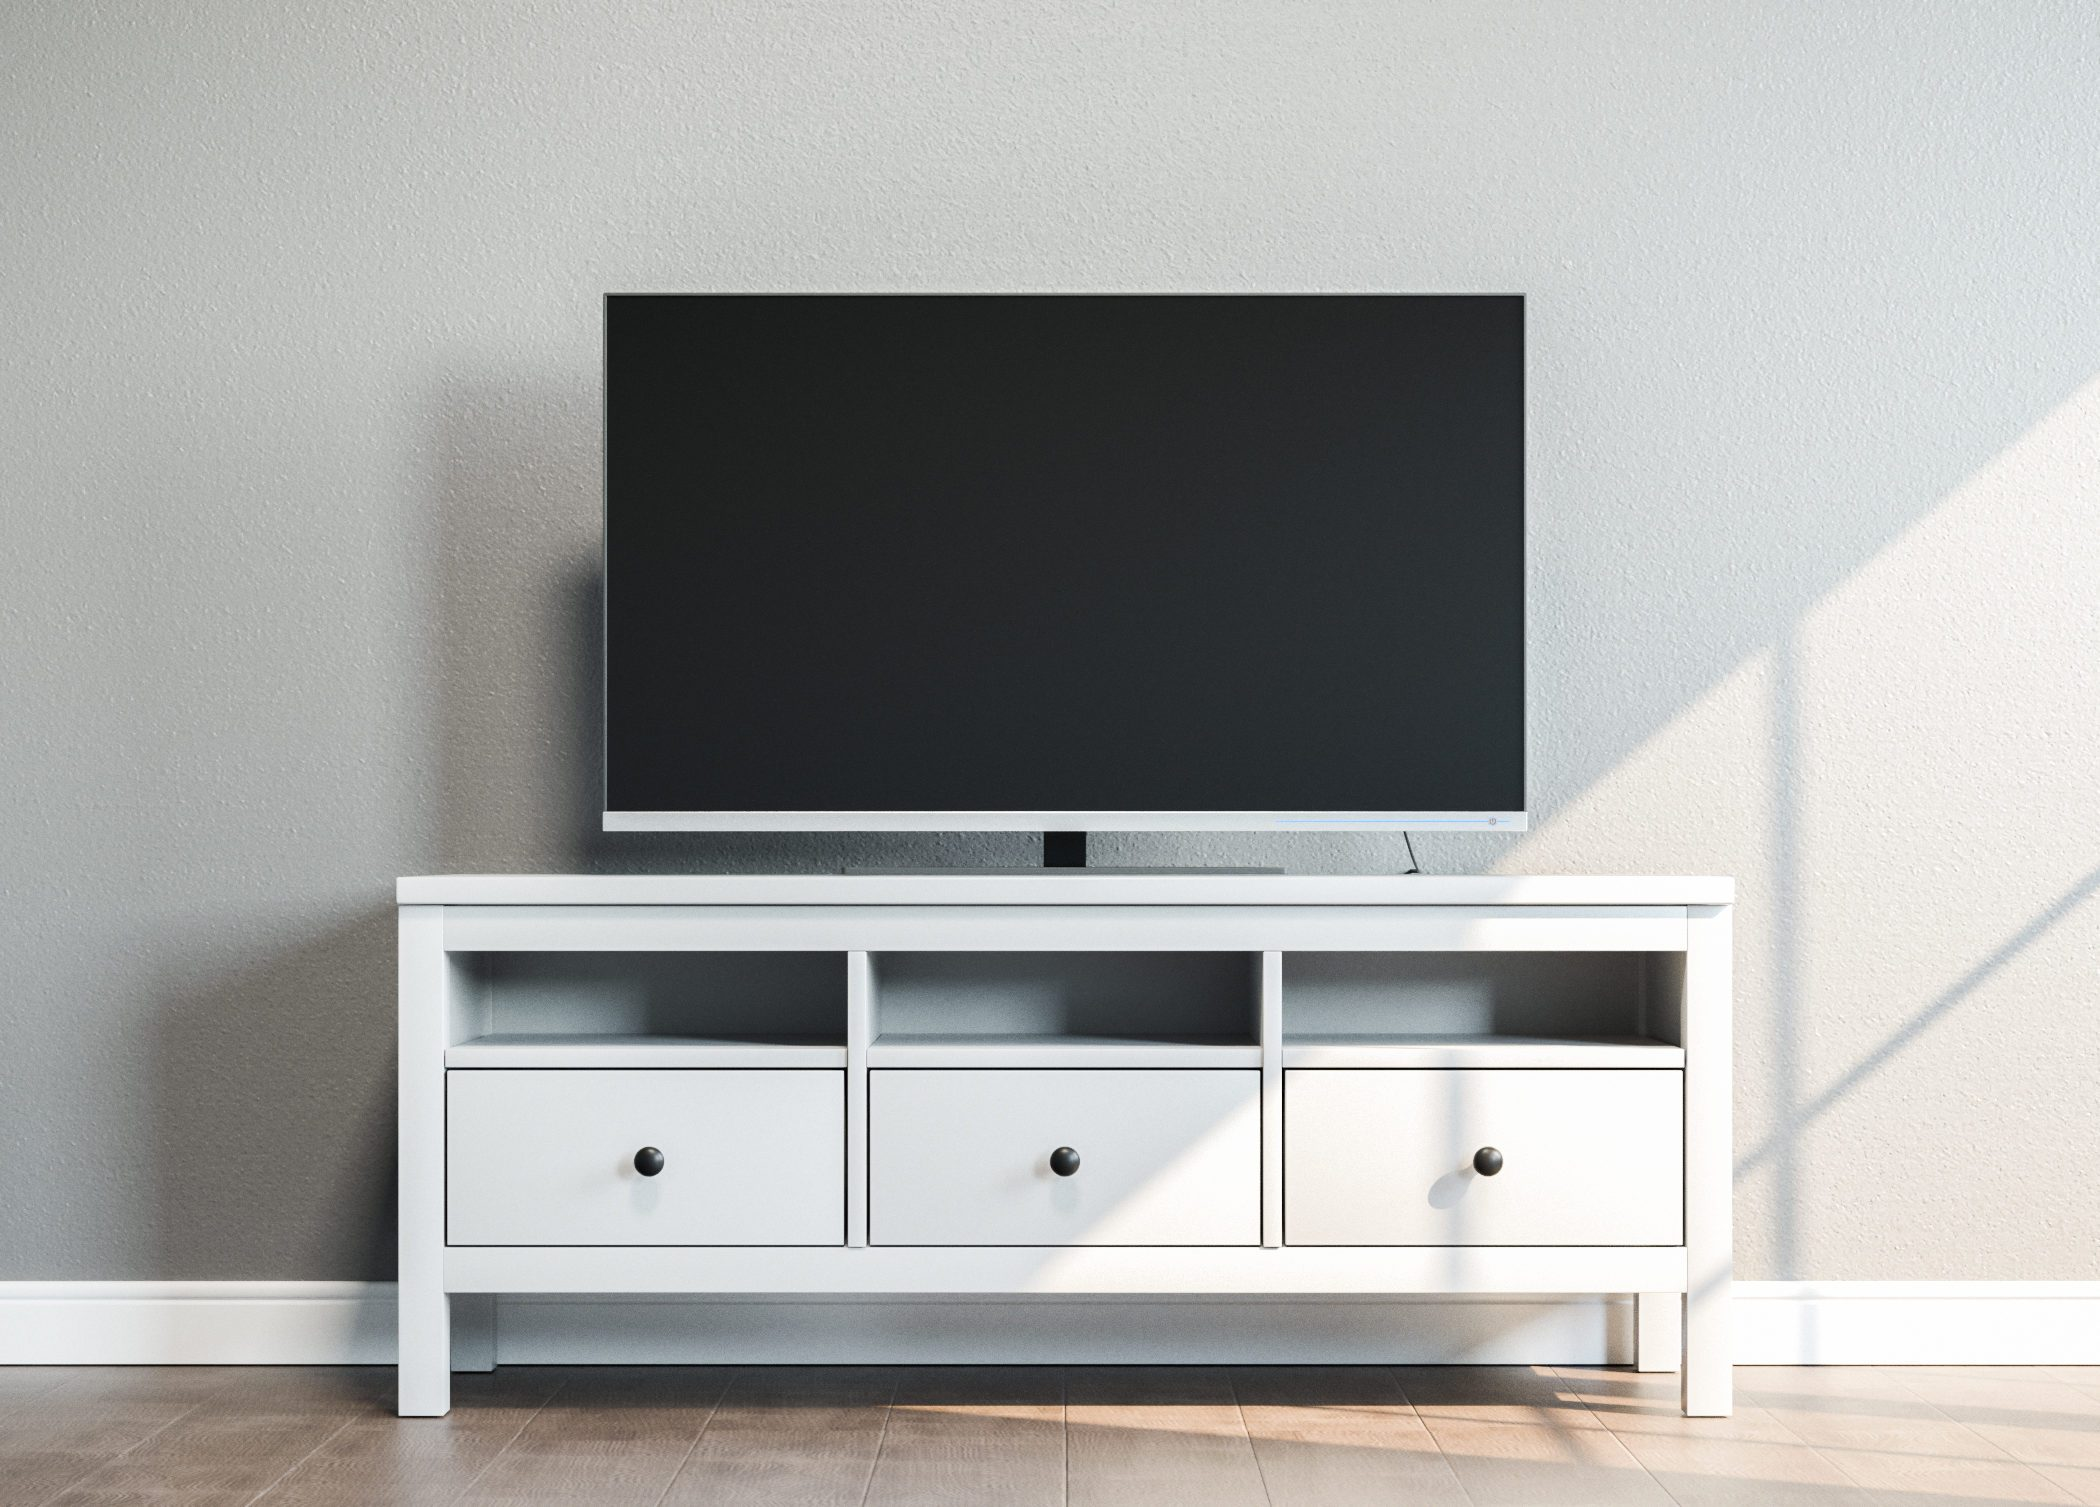 TV on stand in bright room 3D illustration